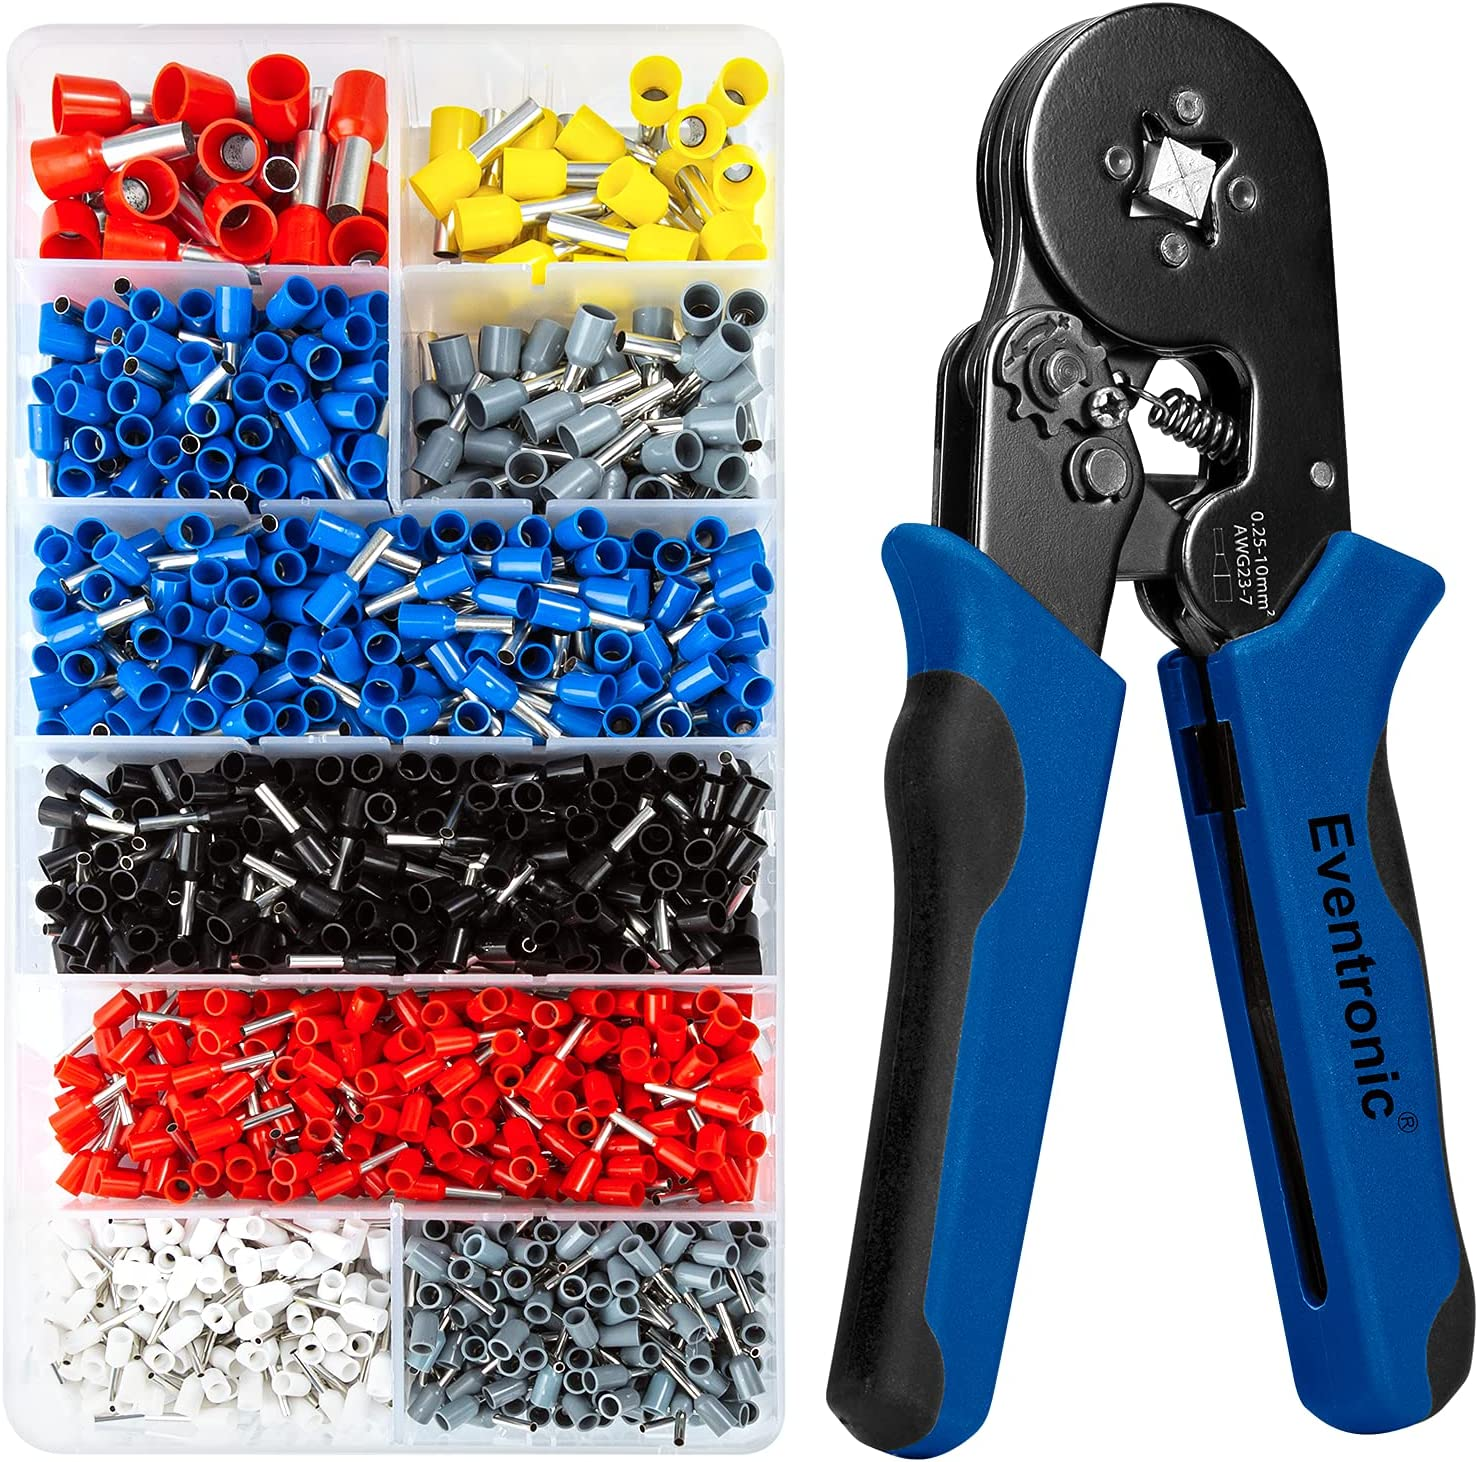 Eventronic Ferrule famous Crimping Max 69% OFF Tool AWG23-7 Professional Self- Kit